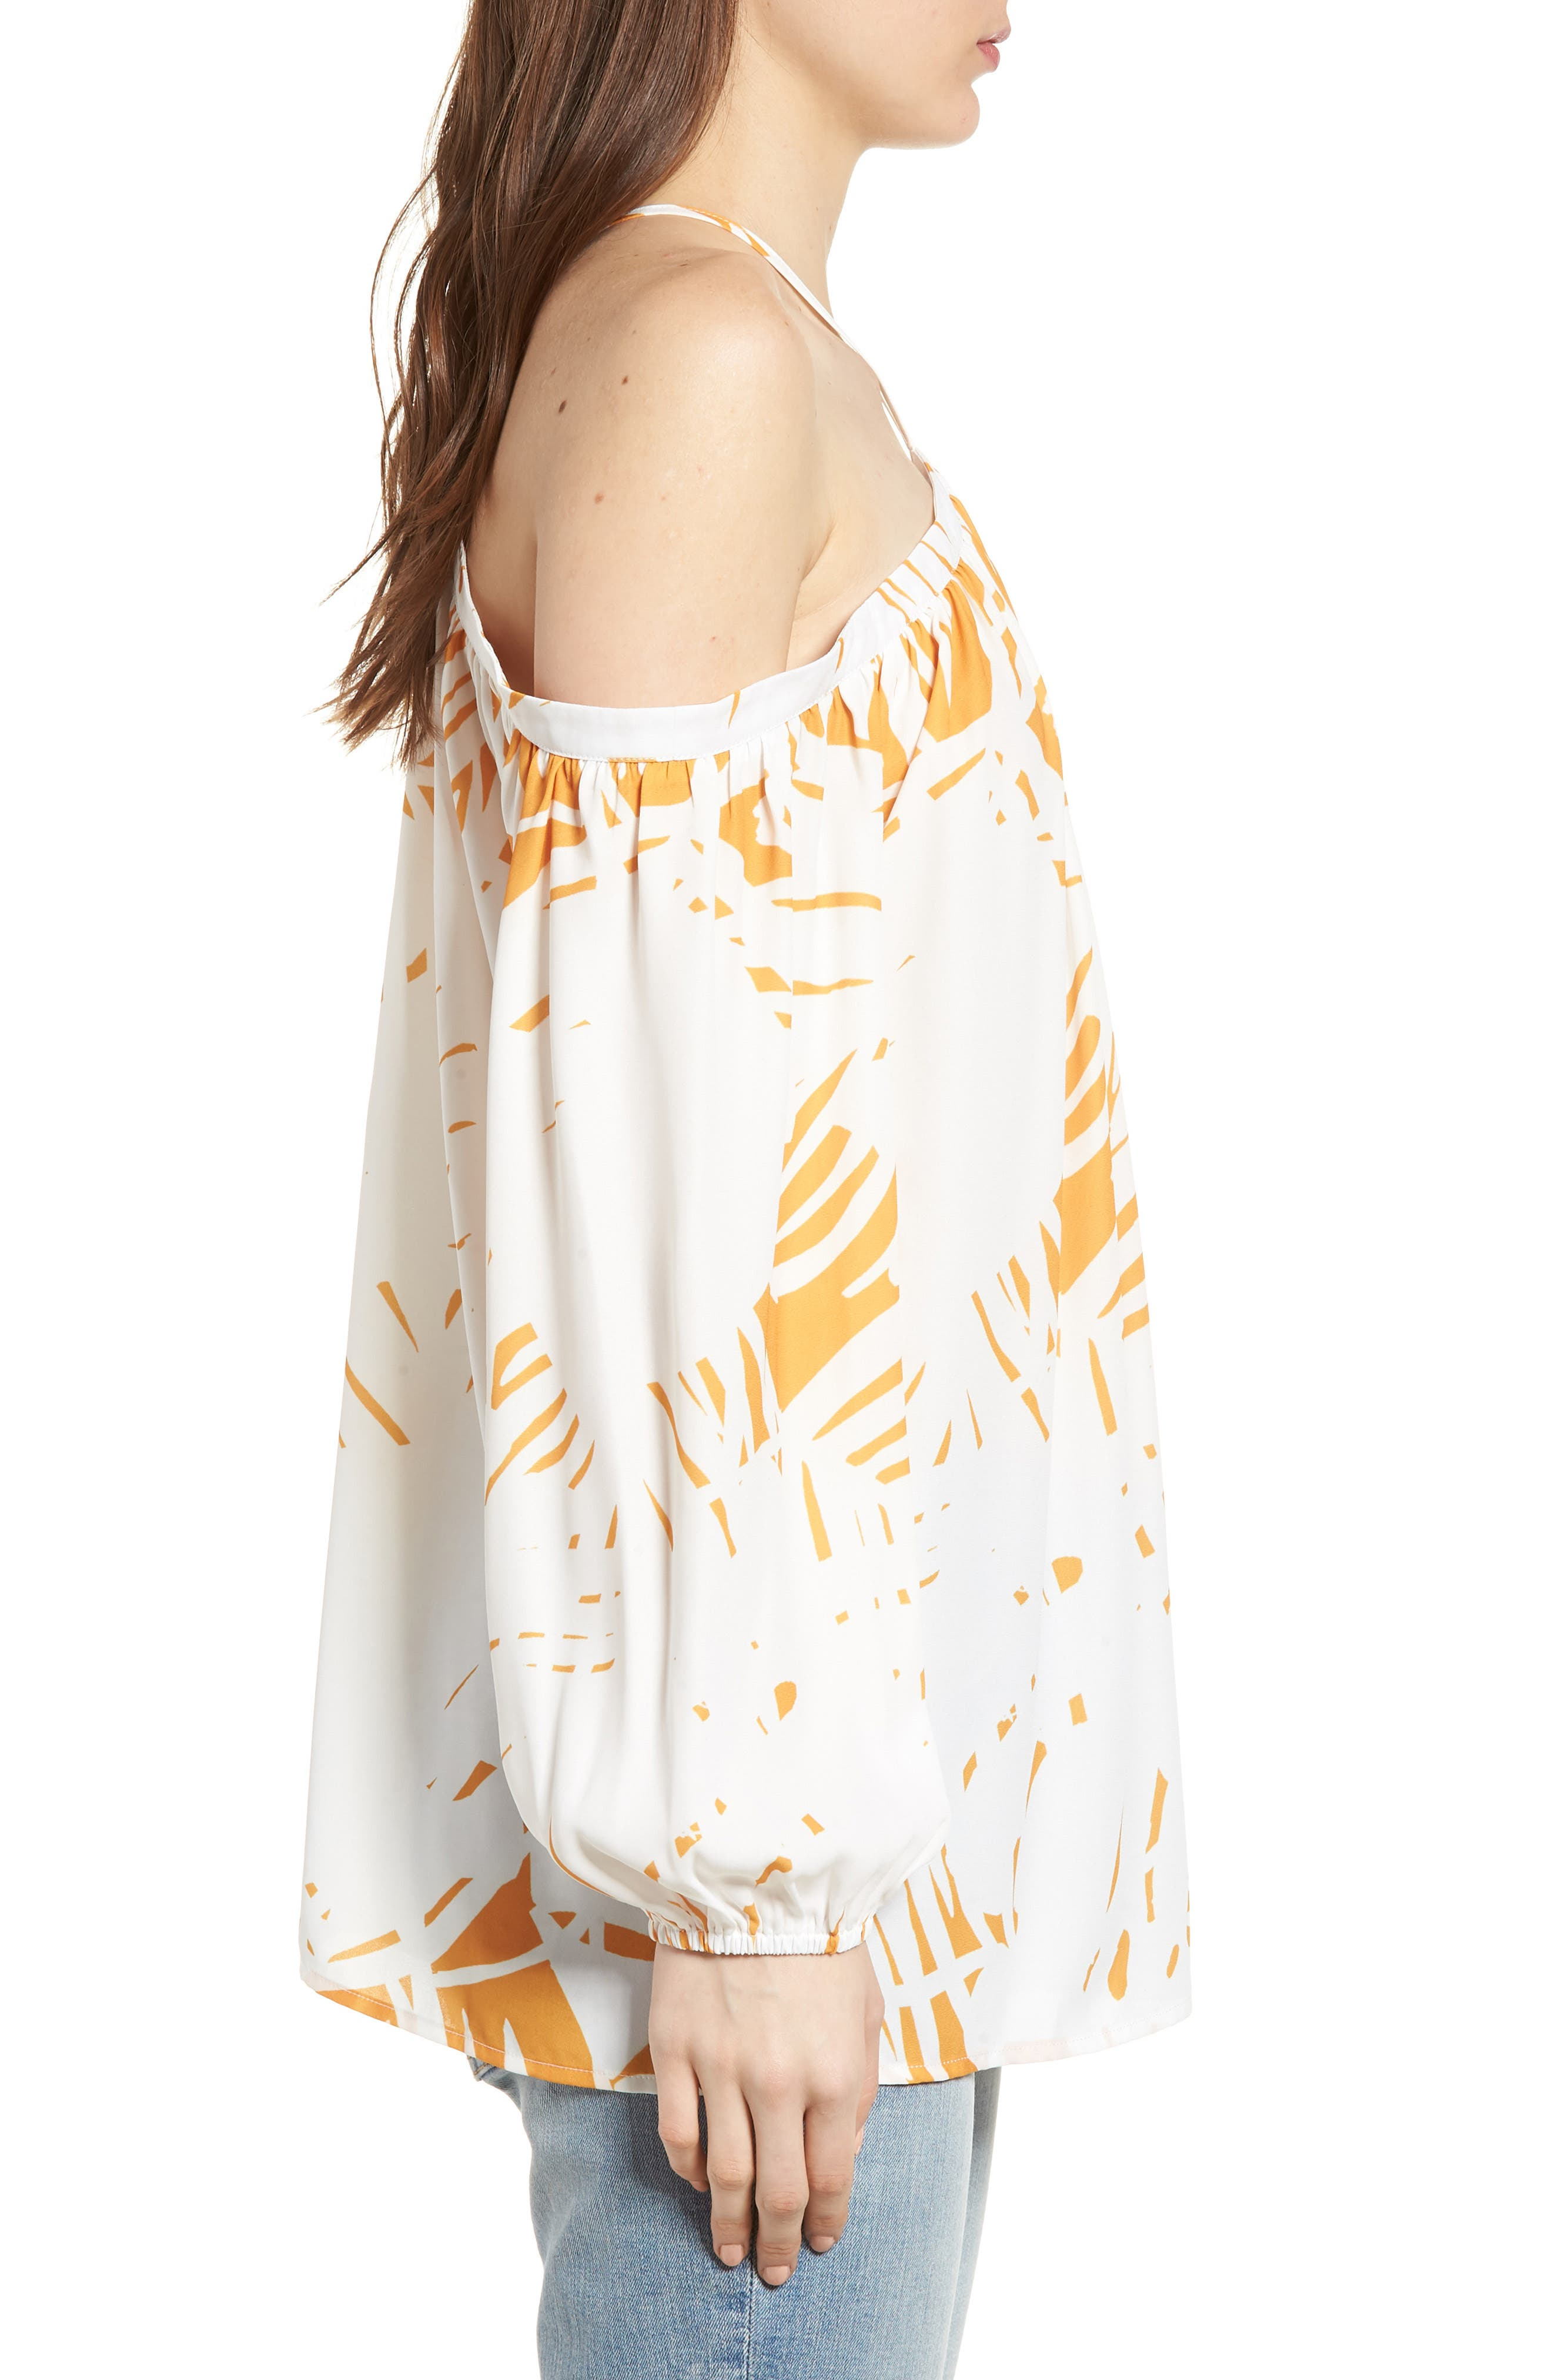 Bishop + Young Ana Palm Print Off the Shoulder Top,                             Alternate thumbnail 3, color,                             400